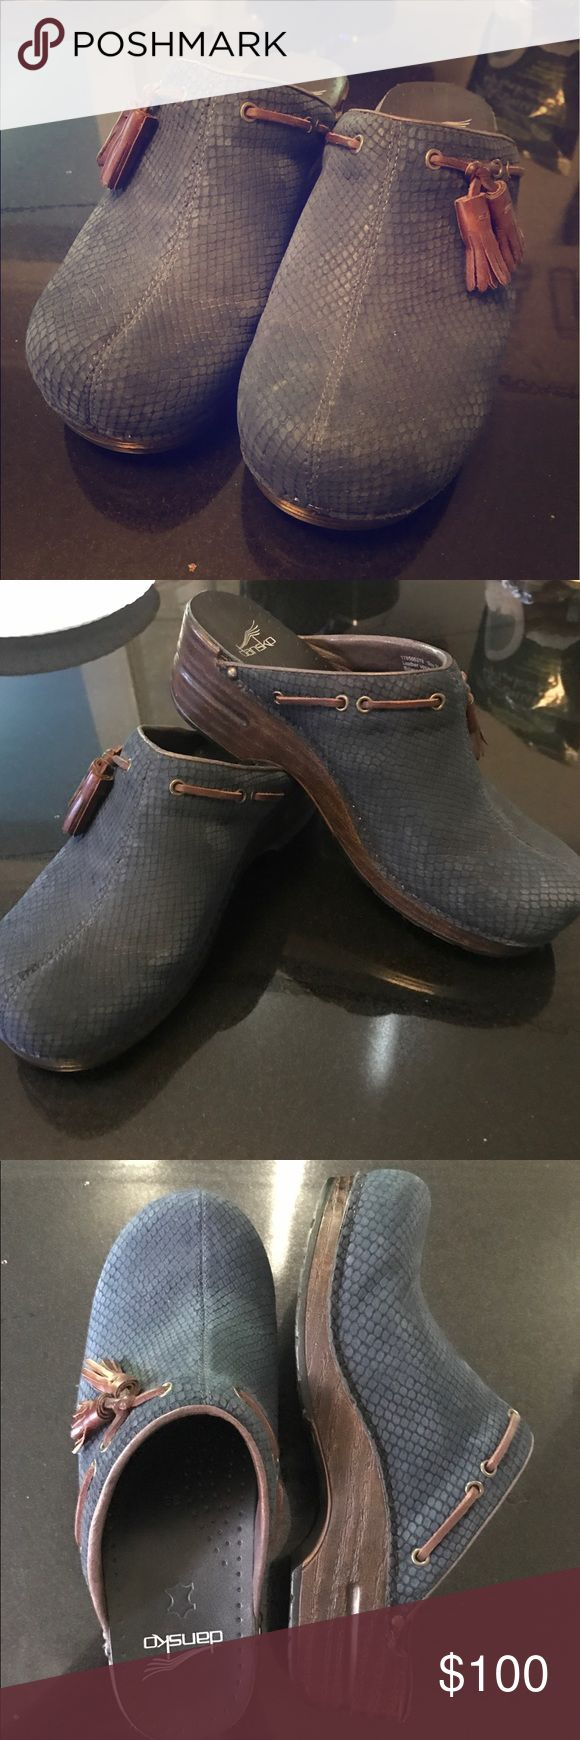 Dansko navy blue textured clogs Dansko navy blue women's heeled clogs with brown leather tassels. Barely worn, clean soles and no wear. Dansko Shoes Mules & Clogs